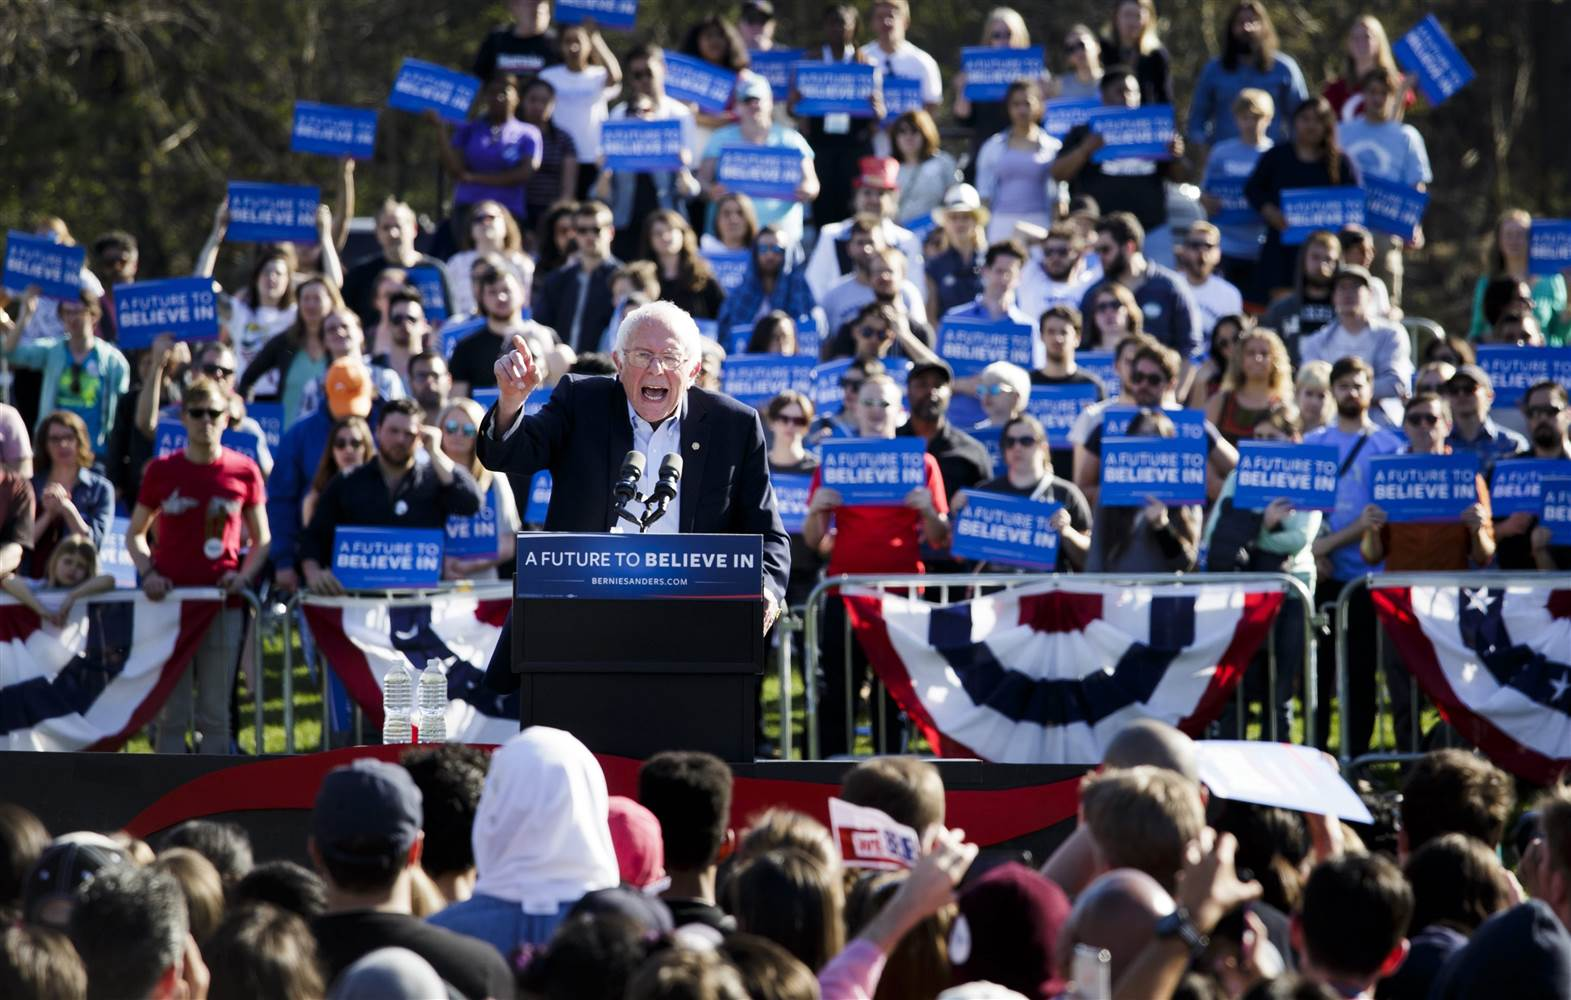 Bernie Sanders at a rally in New York before Primary Day. Source: Justin Lane/EPA.